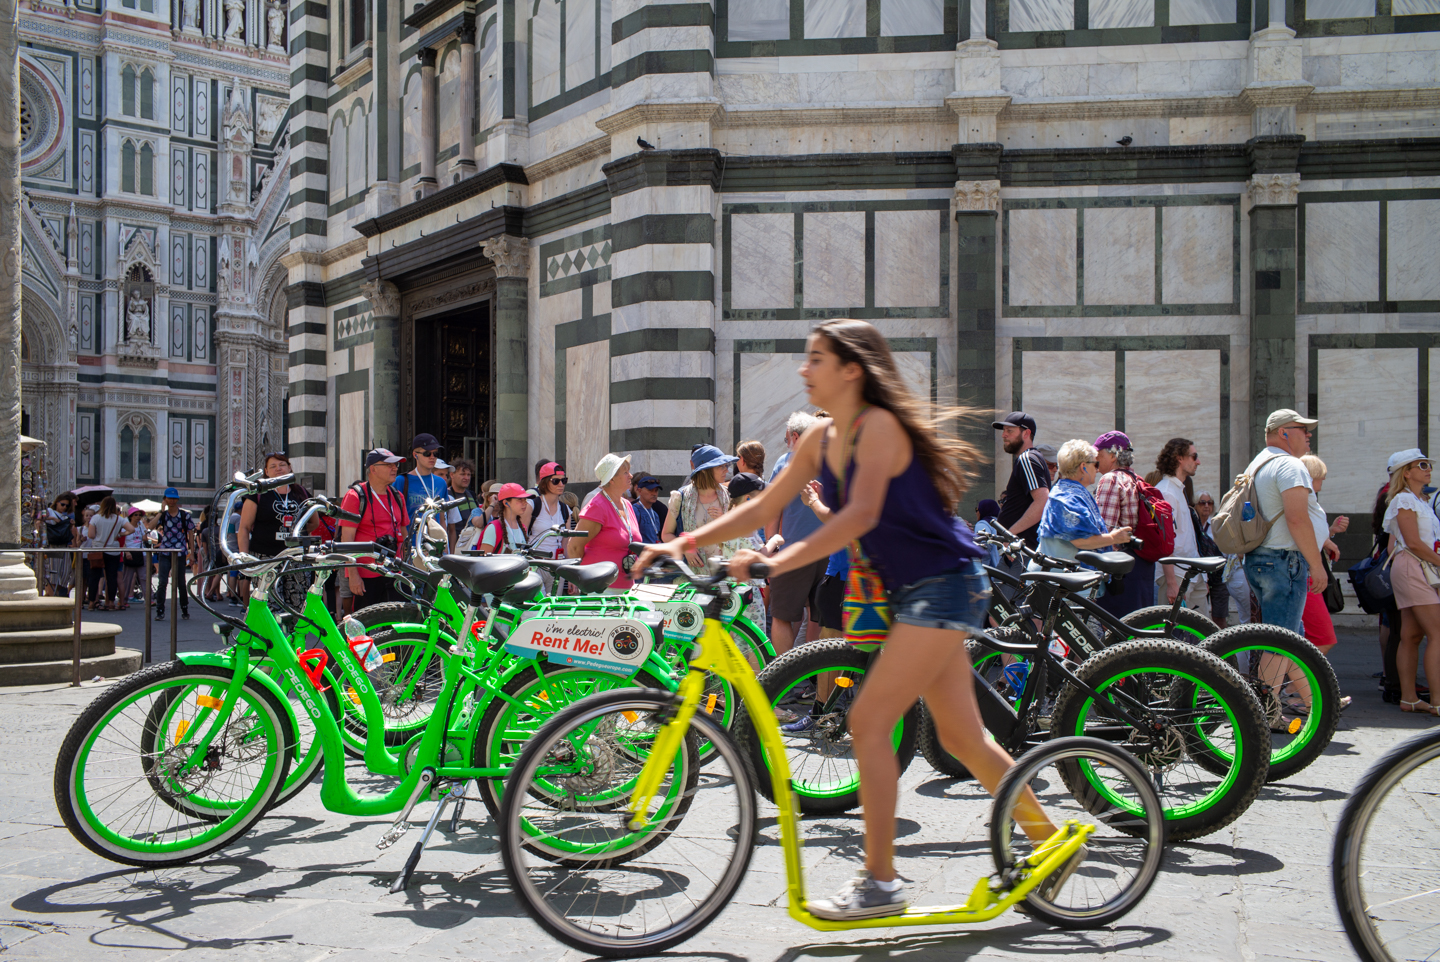 Rent Me, Florence, Italy, Duomo, Bicycle July 2, 2018